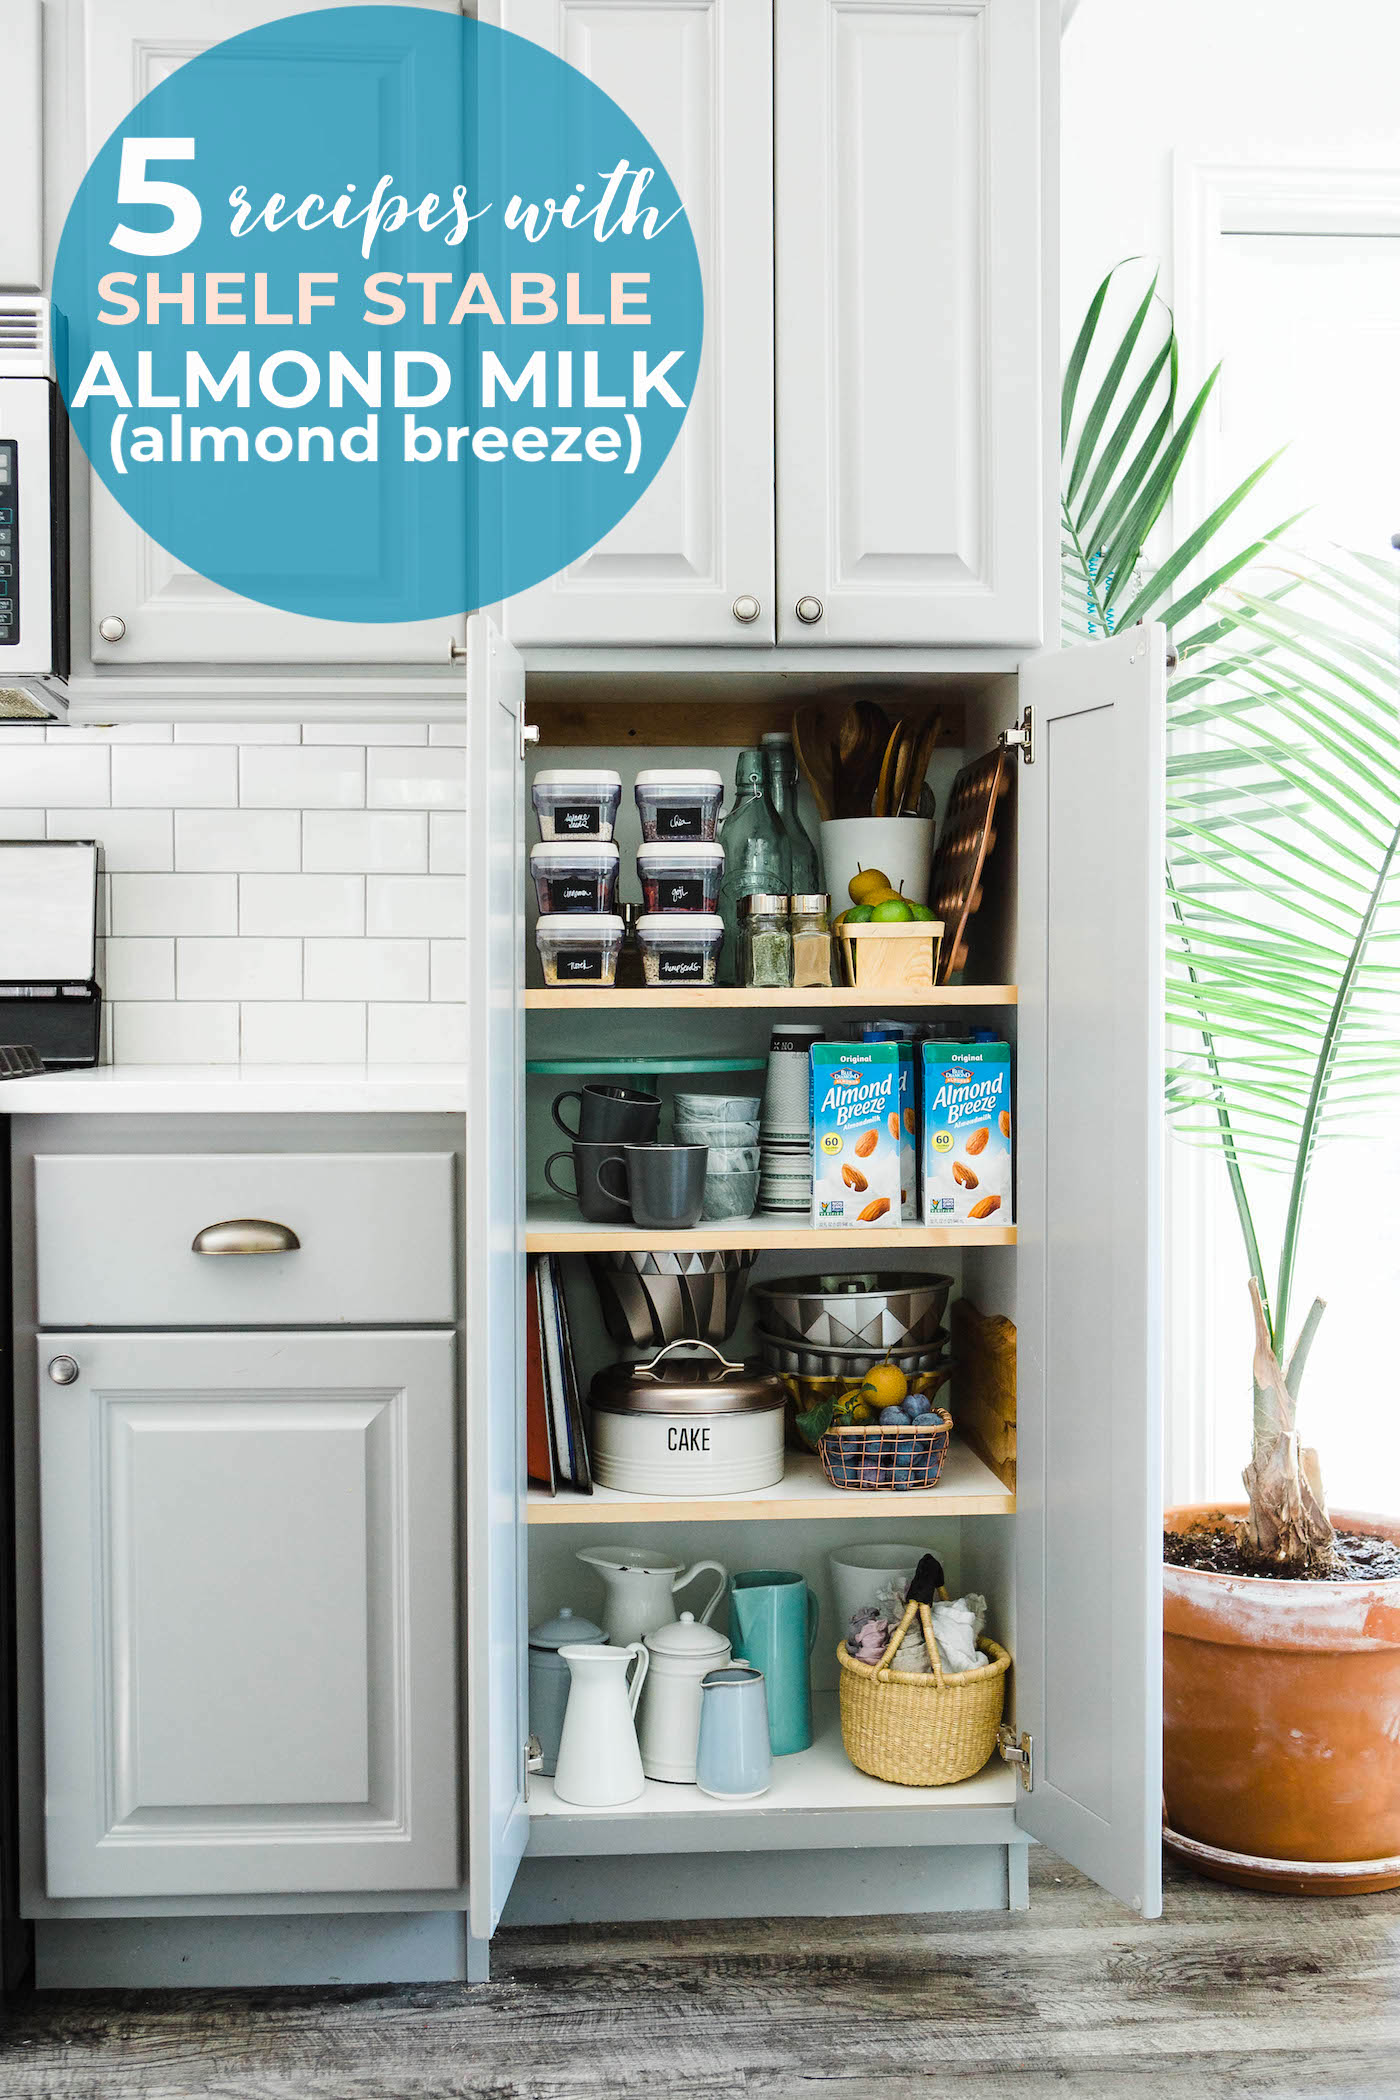 Shelf Stable Almond Breeze #almondmilk to save the day! Pantry Staple Recipes and quick meal ideas! #almondbreeze #recipes #glutenfree #mealideas #breakfast